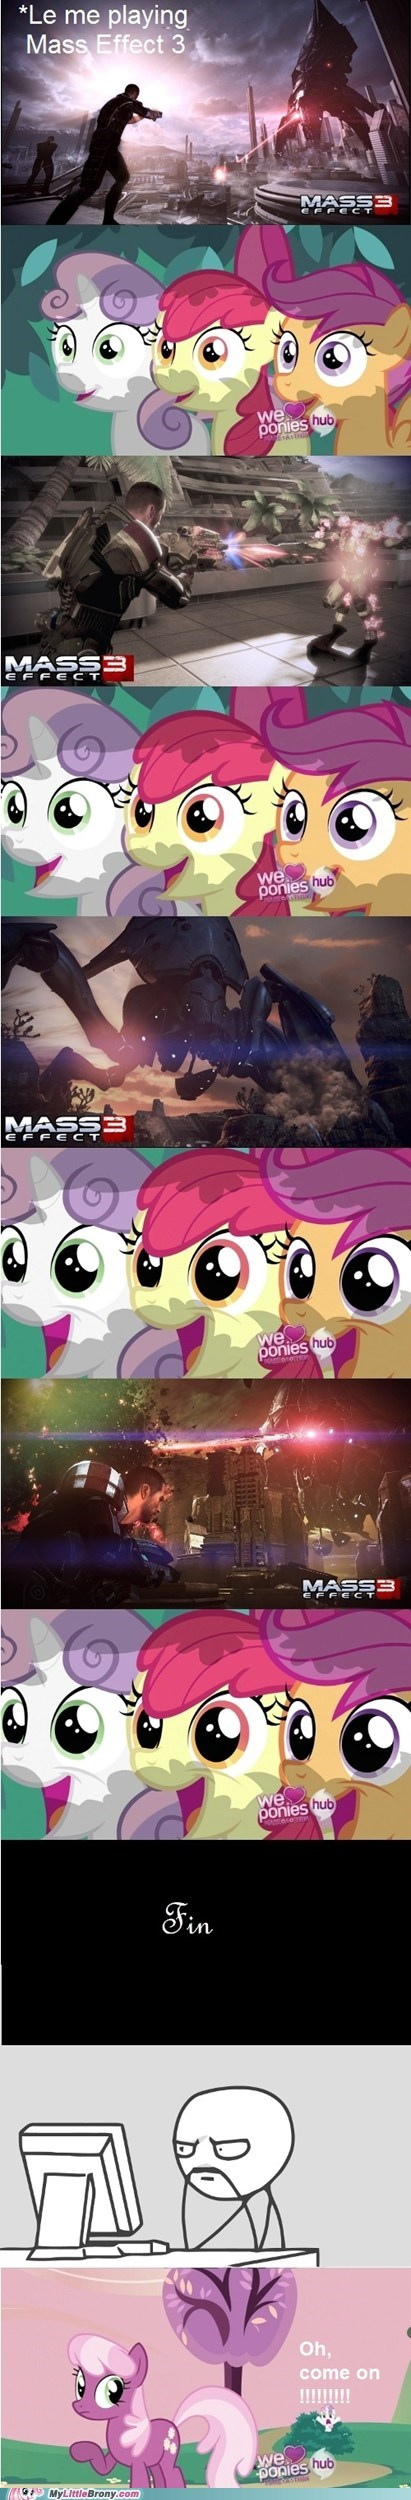 best of week cmc comics cutie mark crusaders mass effect 3 reaction